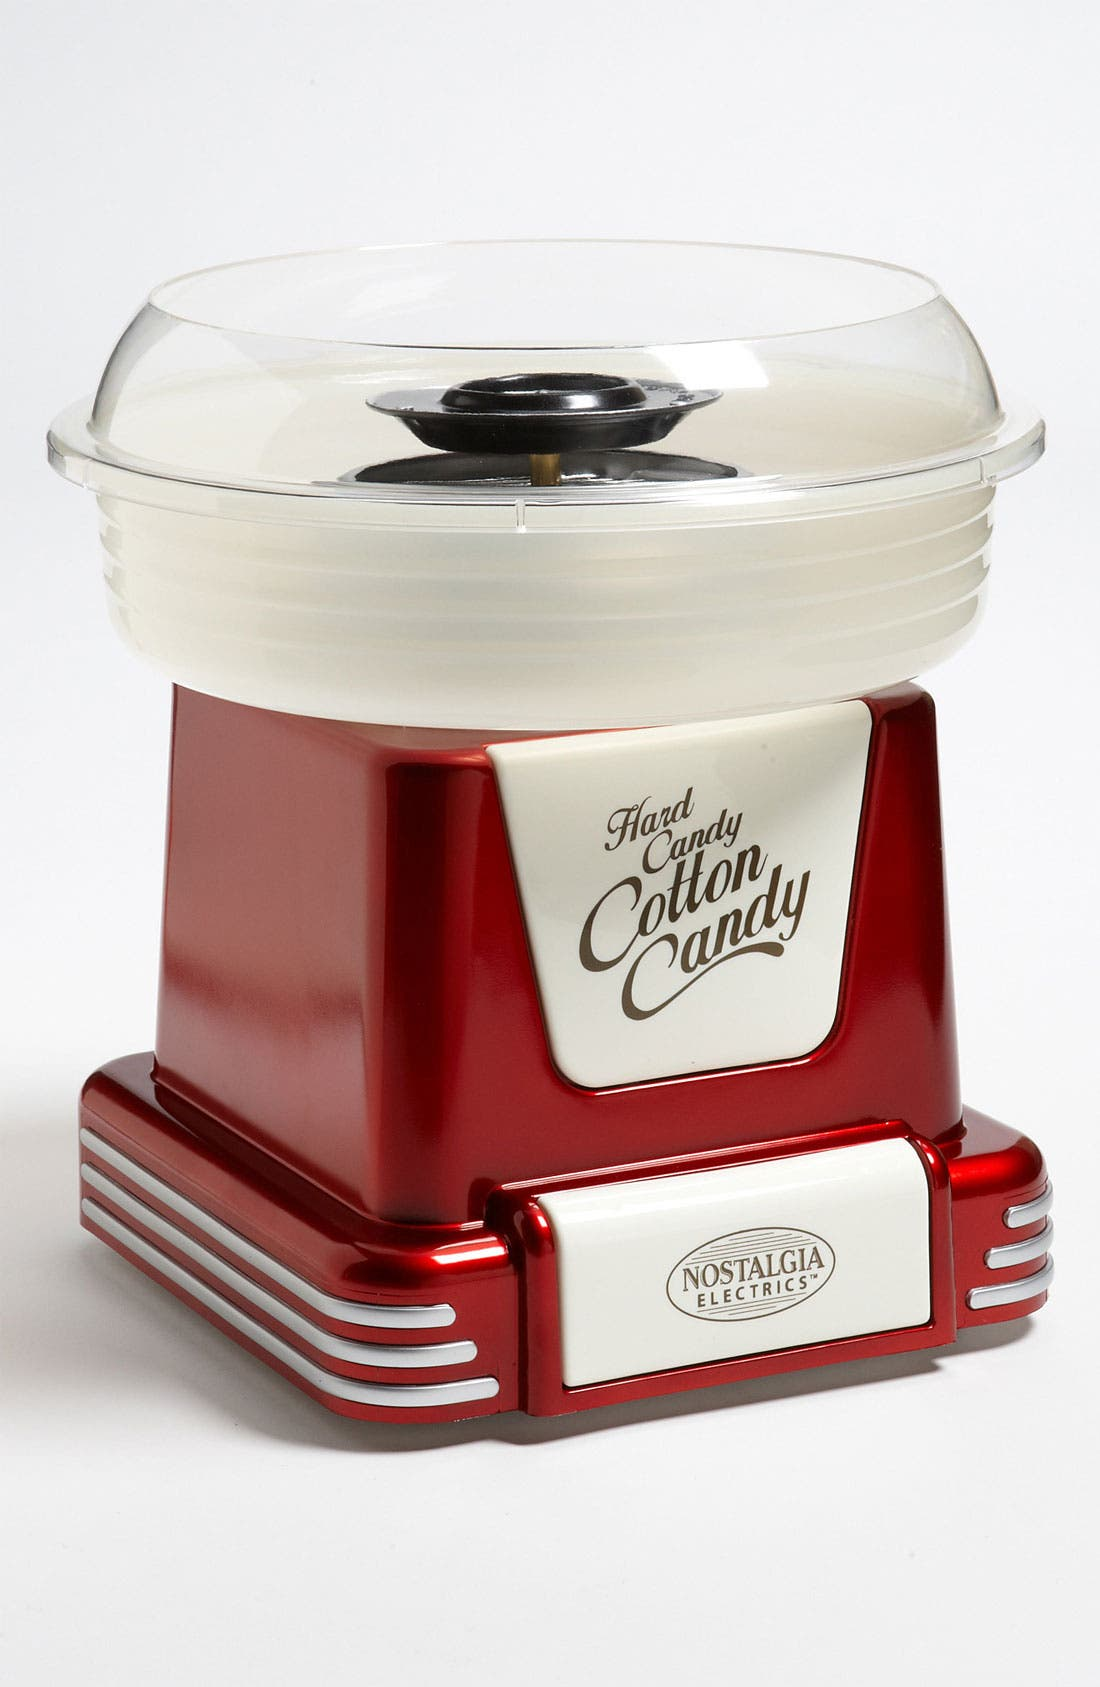 Alternate Image 1 Selected - 'Retro Series' Cotton Candy Maker